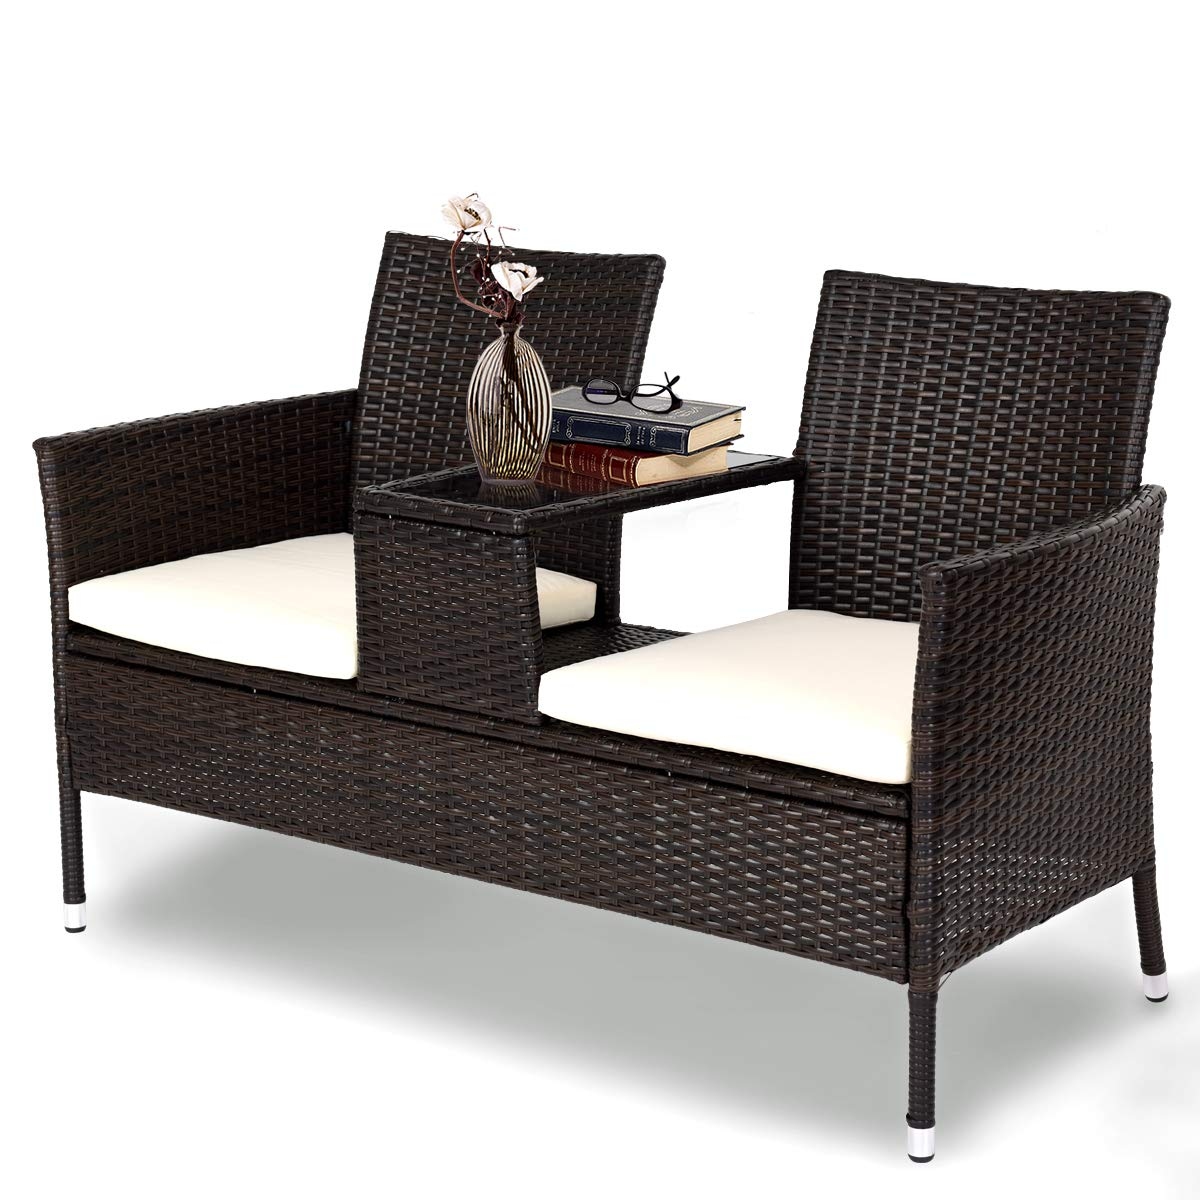 Tangkula outdoor furniture set patio conversation set with removable cushions table wicker modern sofas for garden lawn backyard outdoor chat set